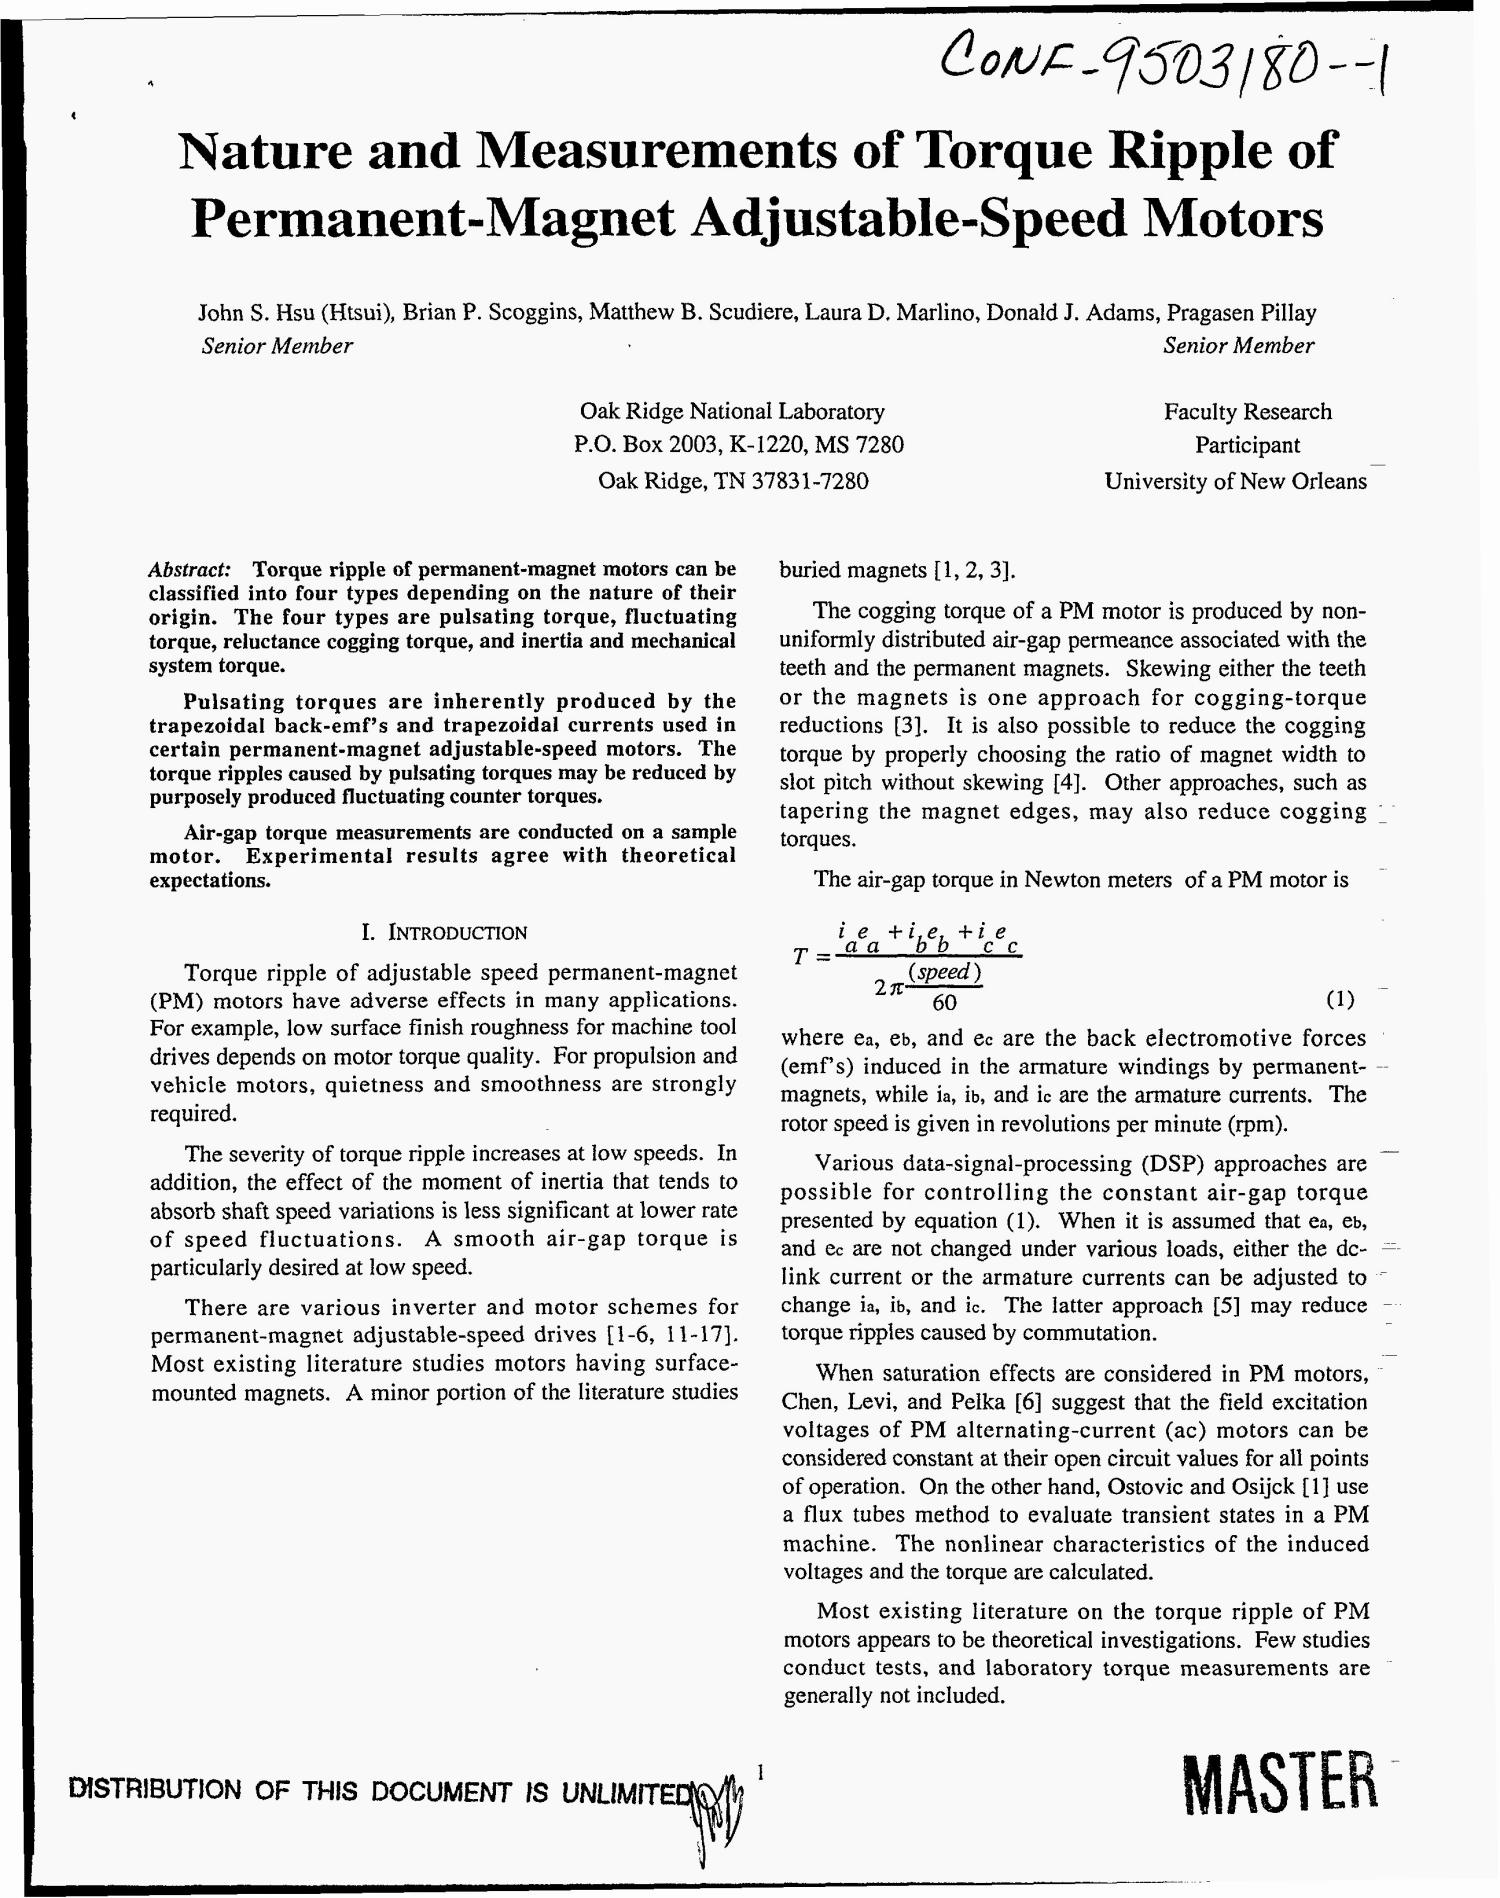 Nature and measurements of torque ripple of permanent magnet